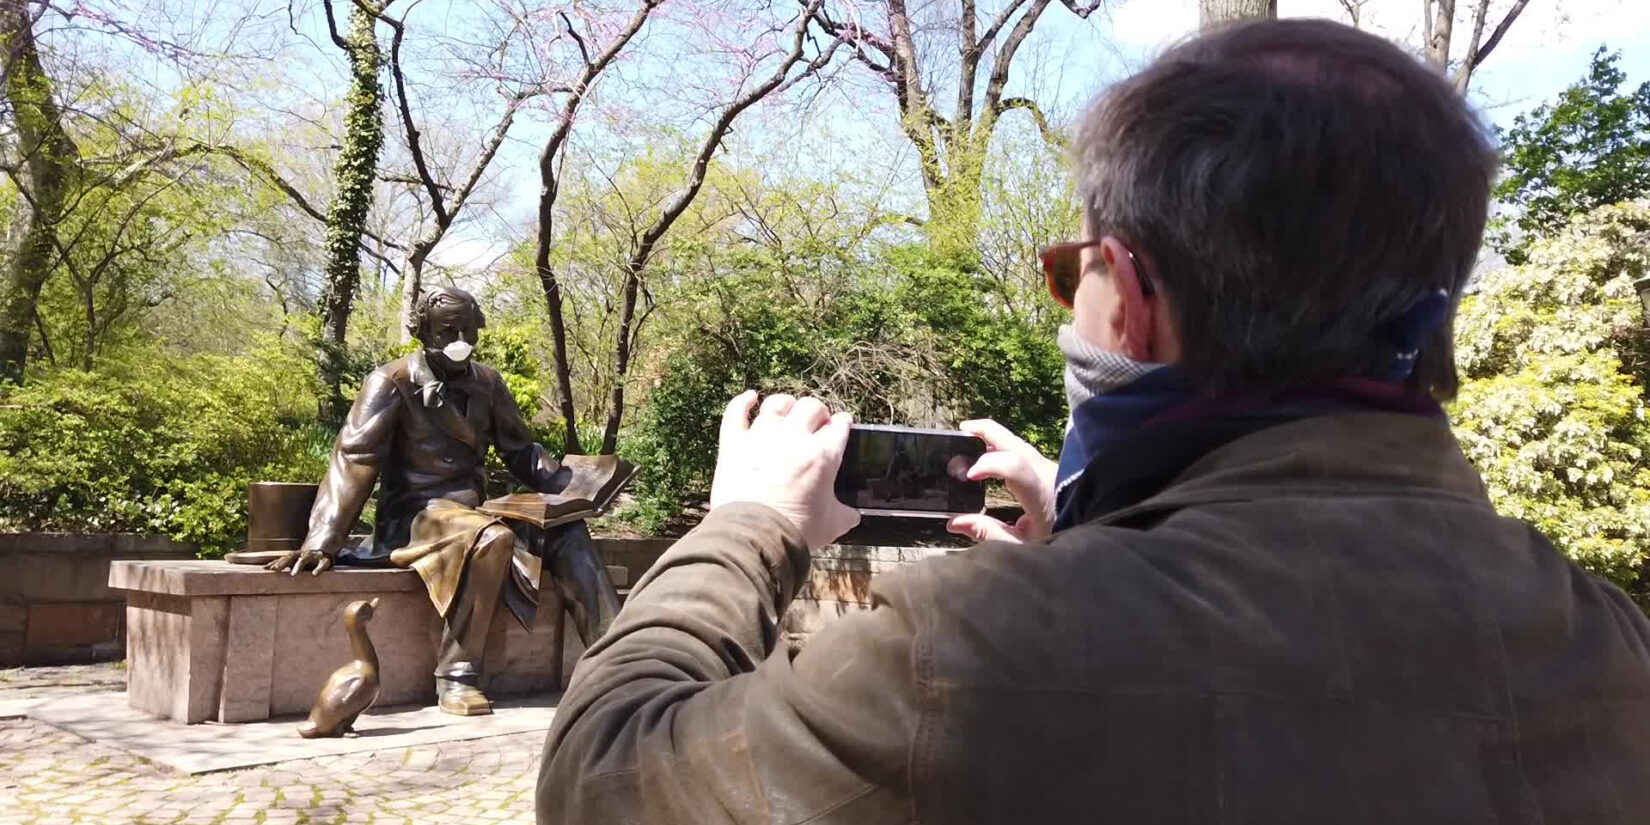 Mason photographing the Andersen statue by Conservatory Water